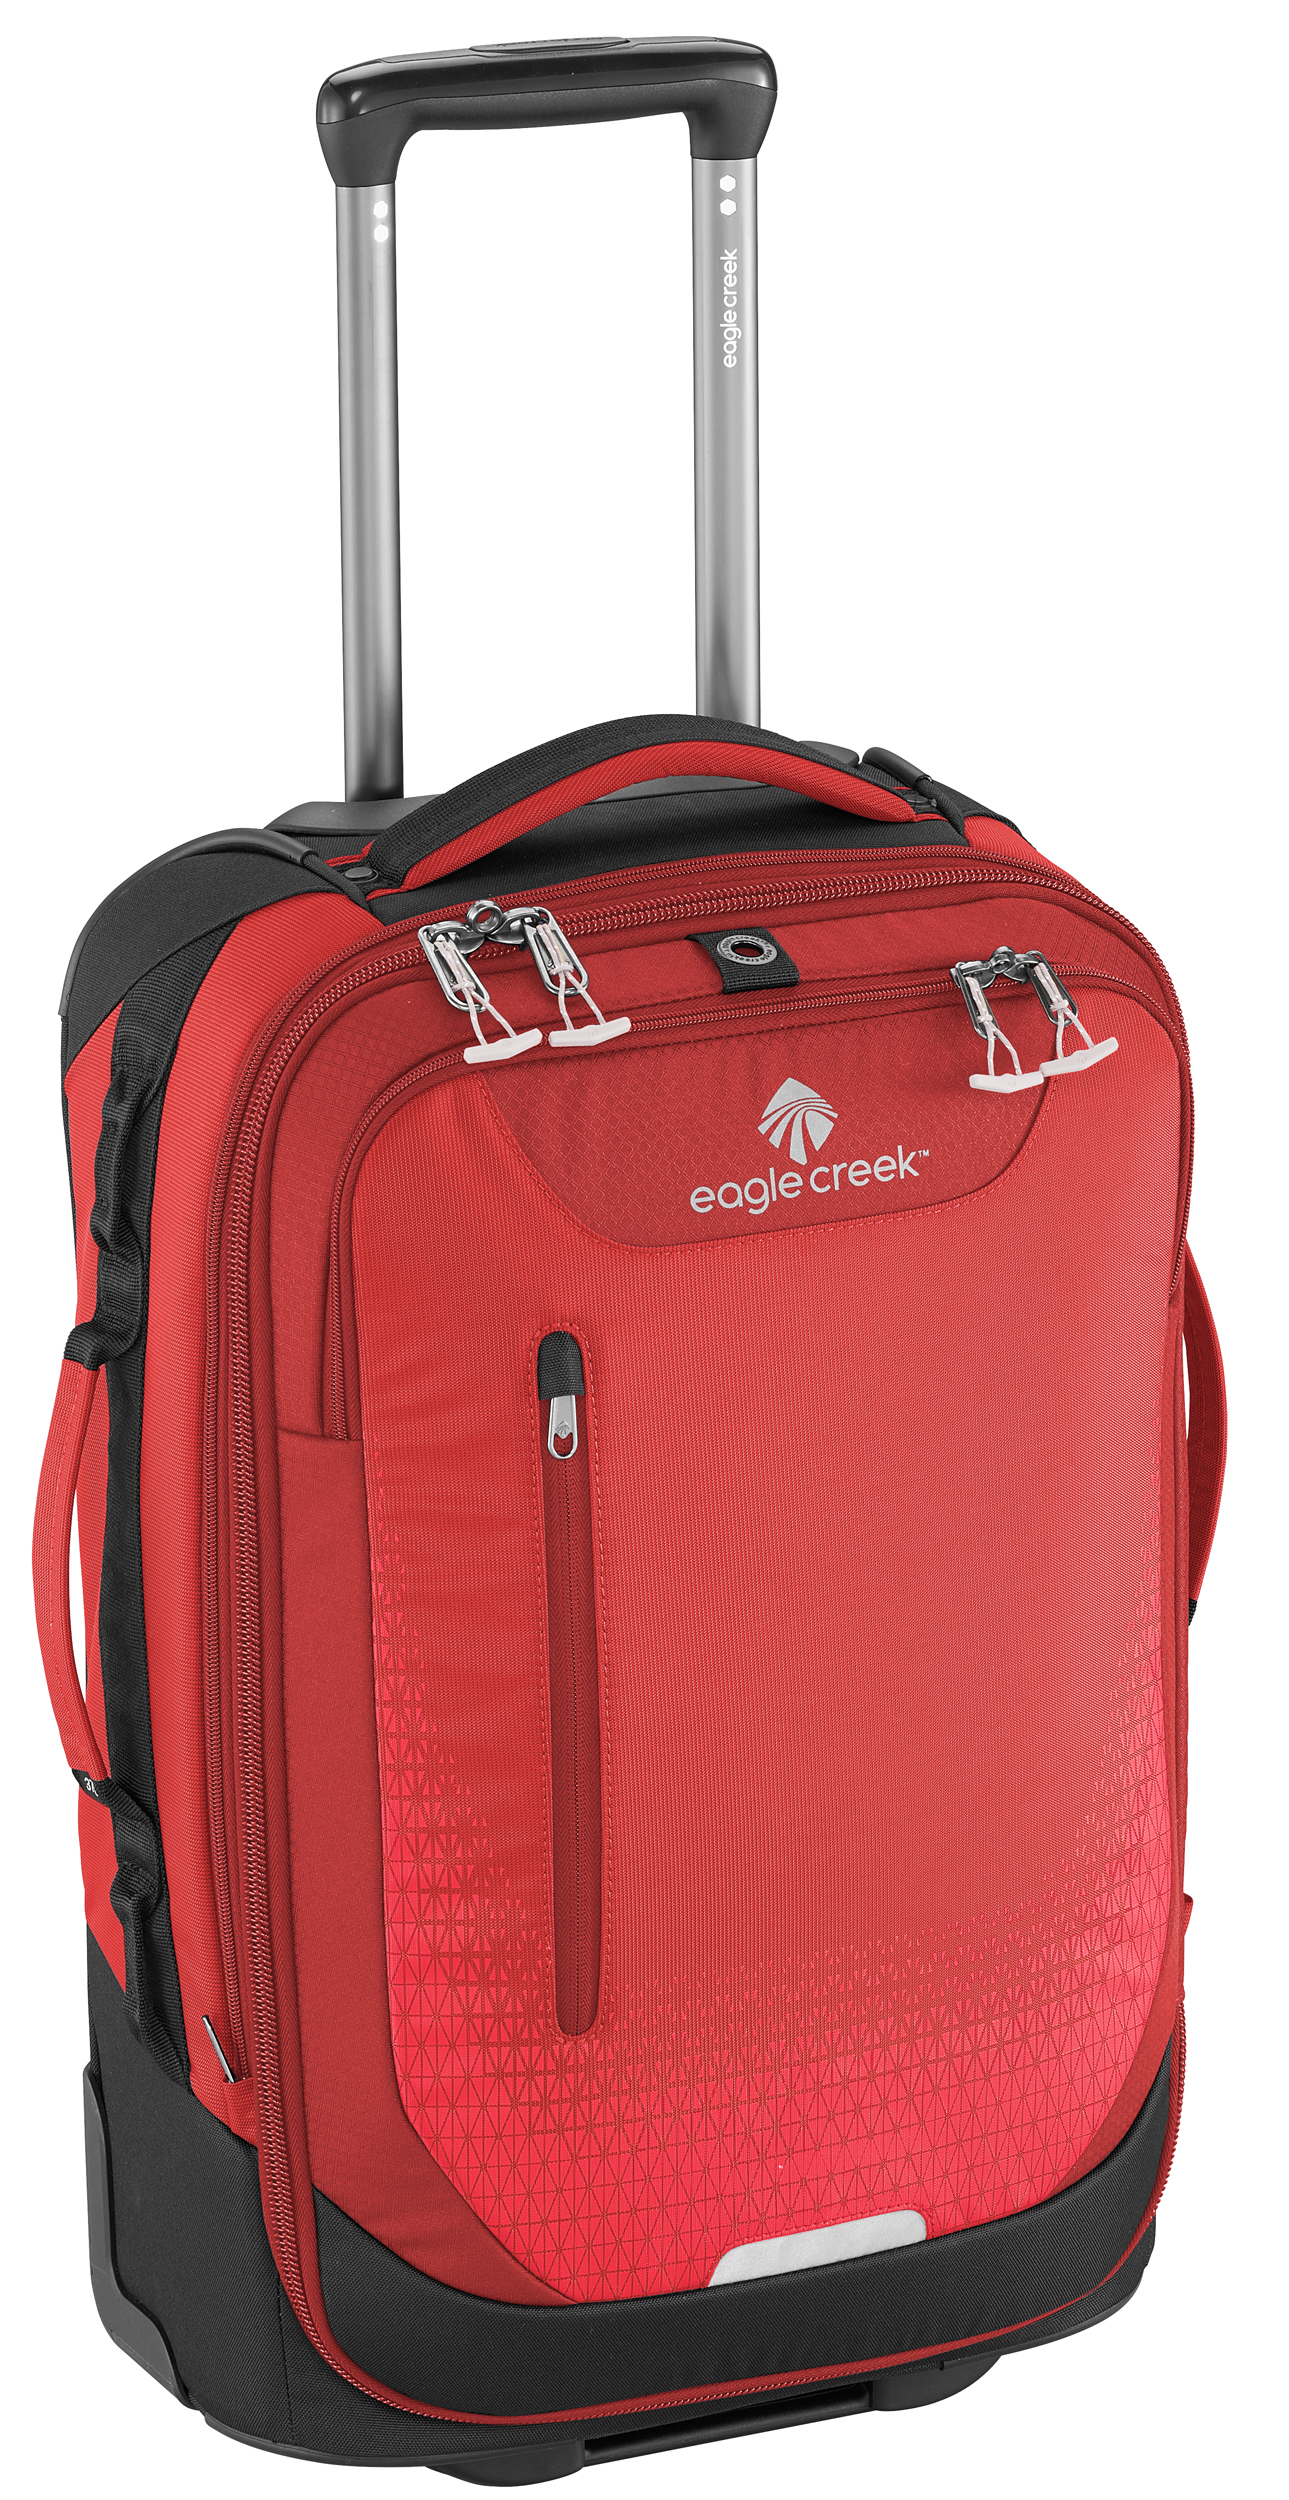 Expanse™ International Carry-On by Eagle Creek (Color: Volcano Red)